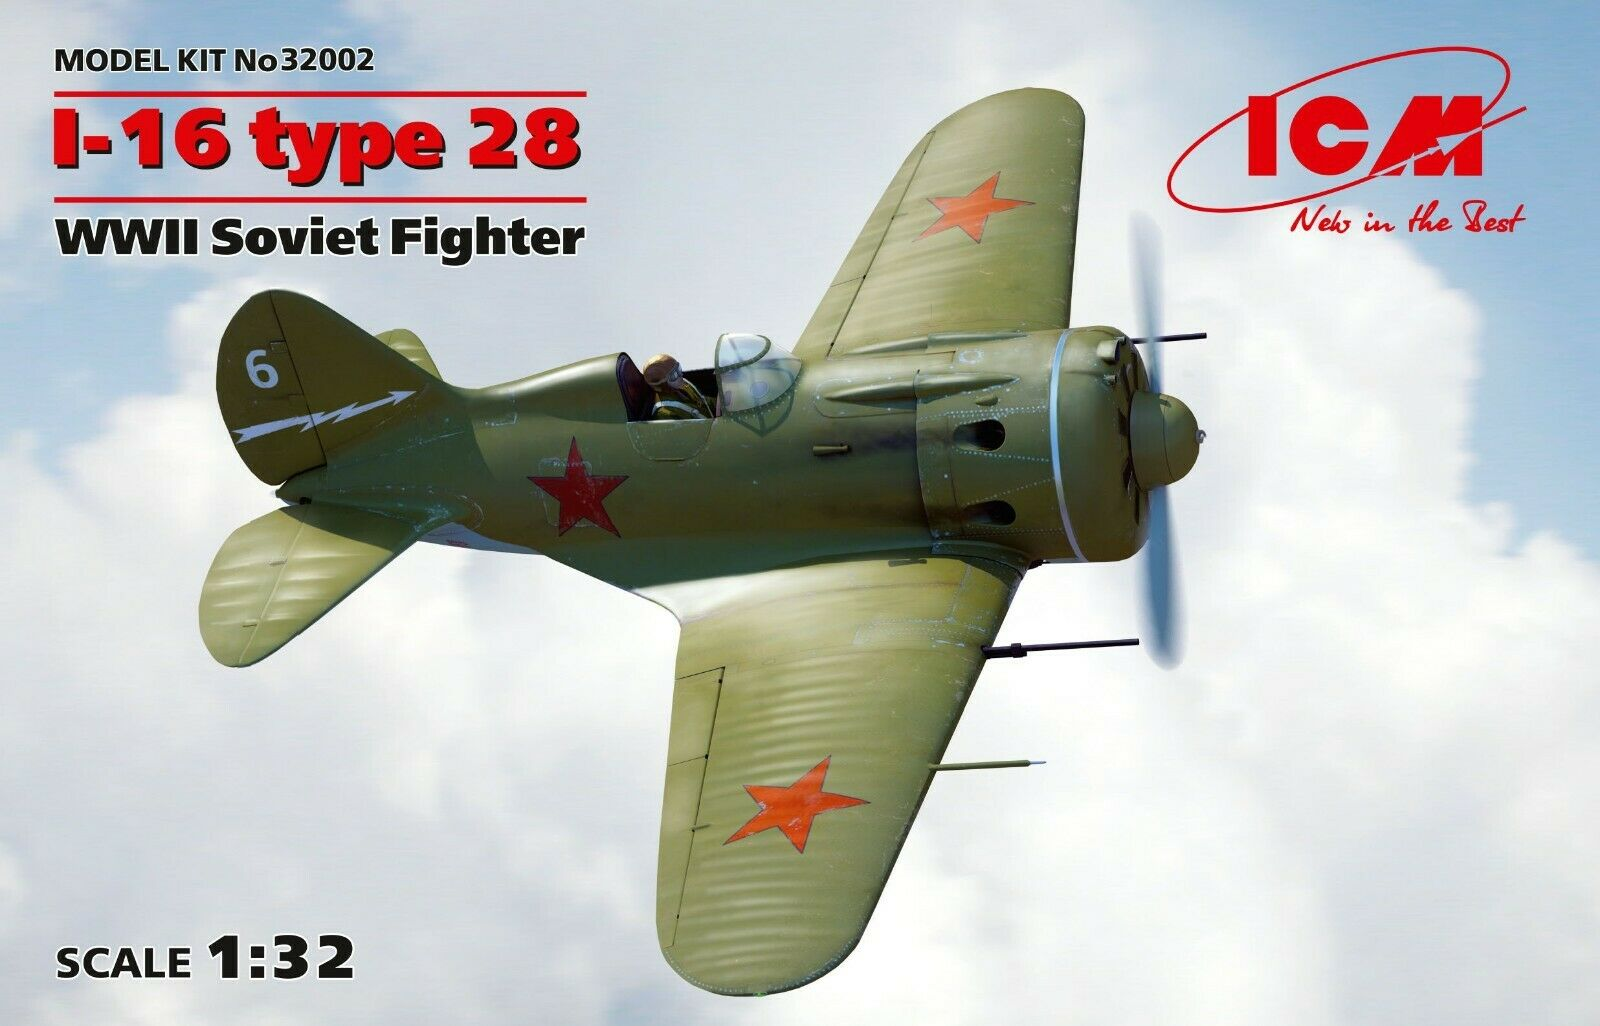 ICM 32002 I-16 type 28, WWII Soviet Fighter 1 32 scale model kit 191 mm